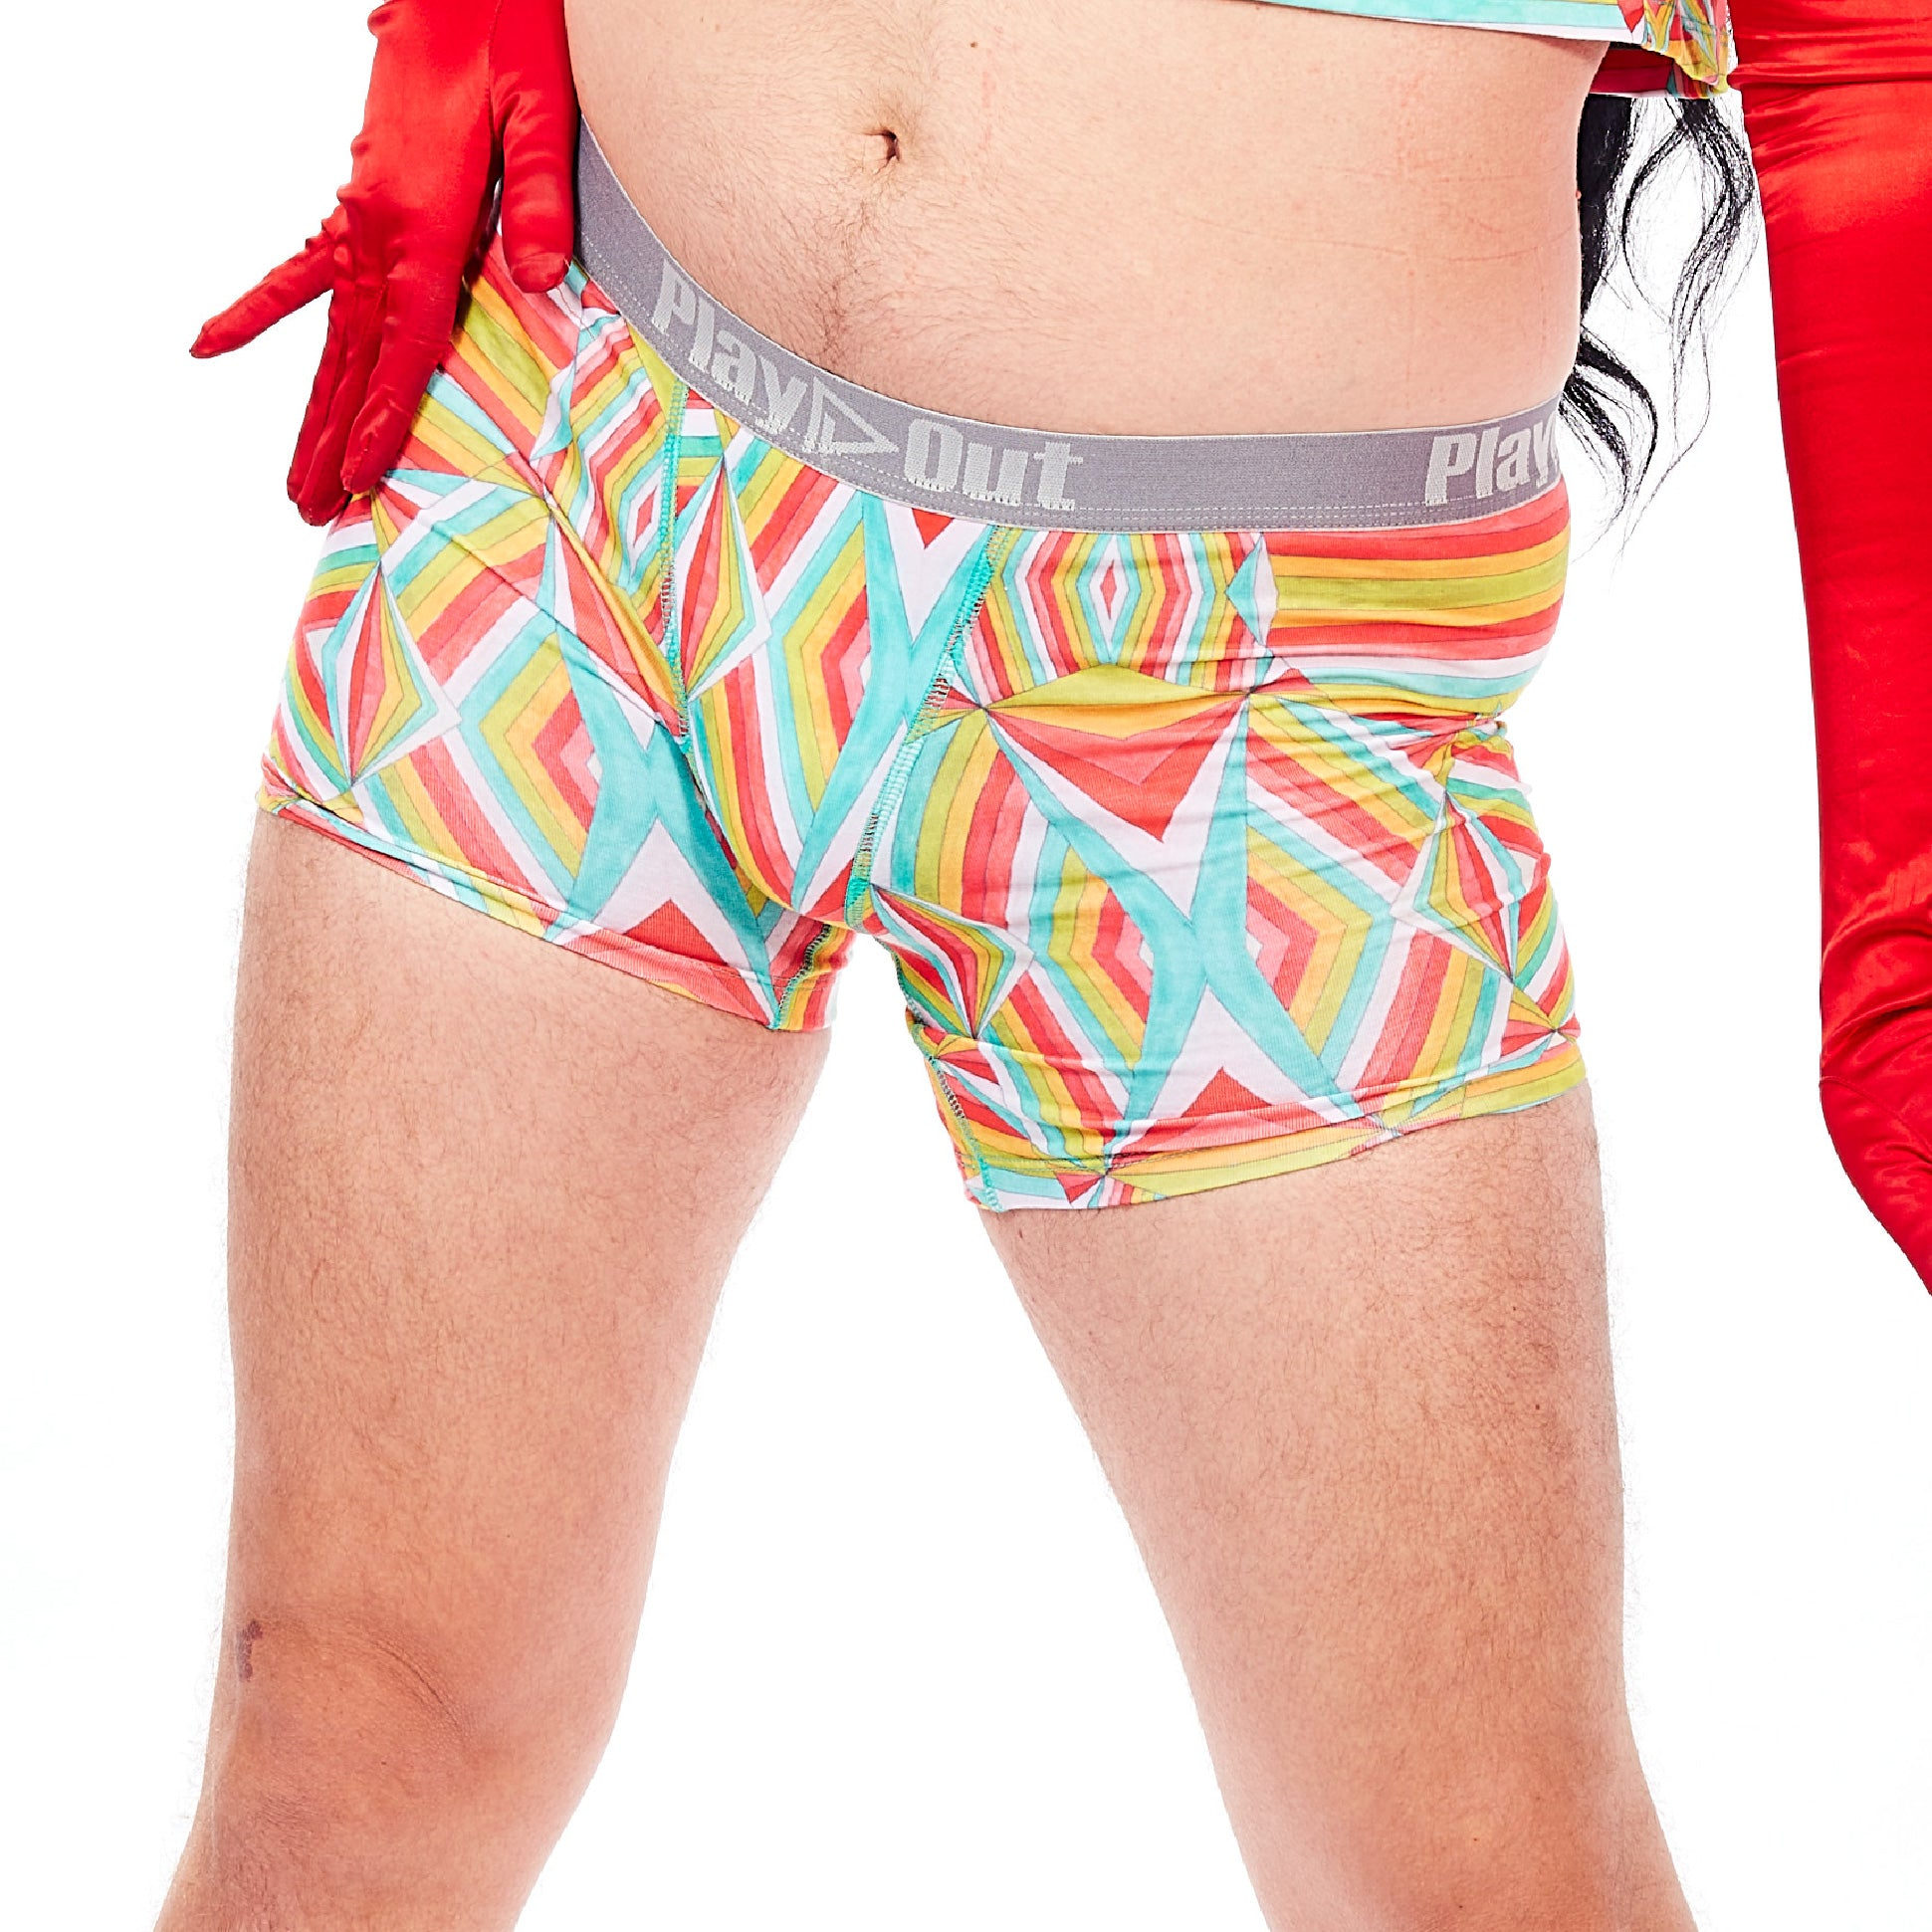 Play Out Apparel Midi Boxer Brief Underwear in Mazie multi color print S-5X front